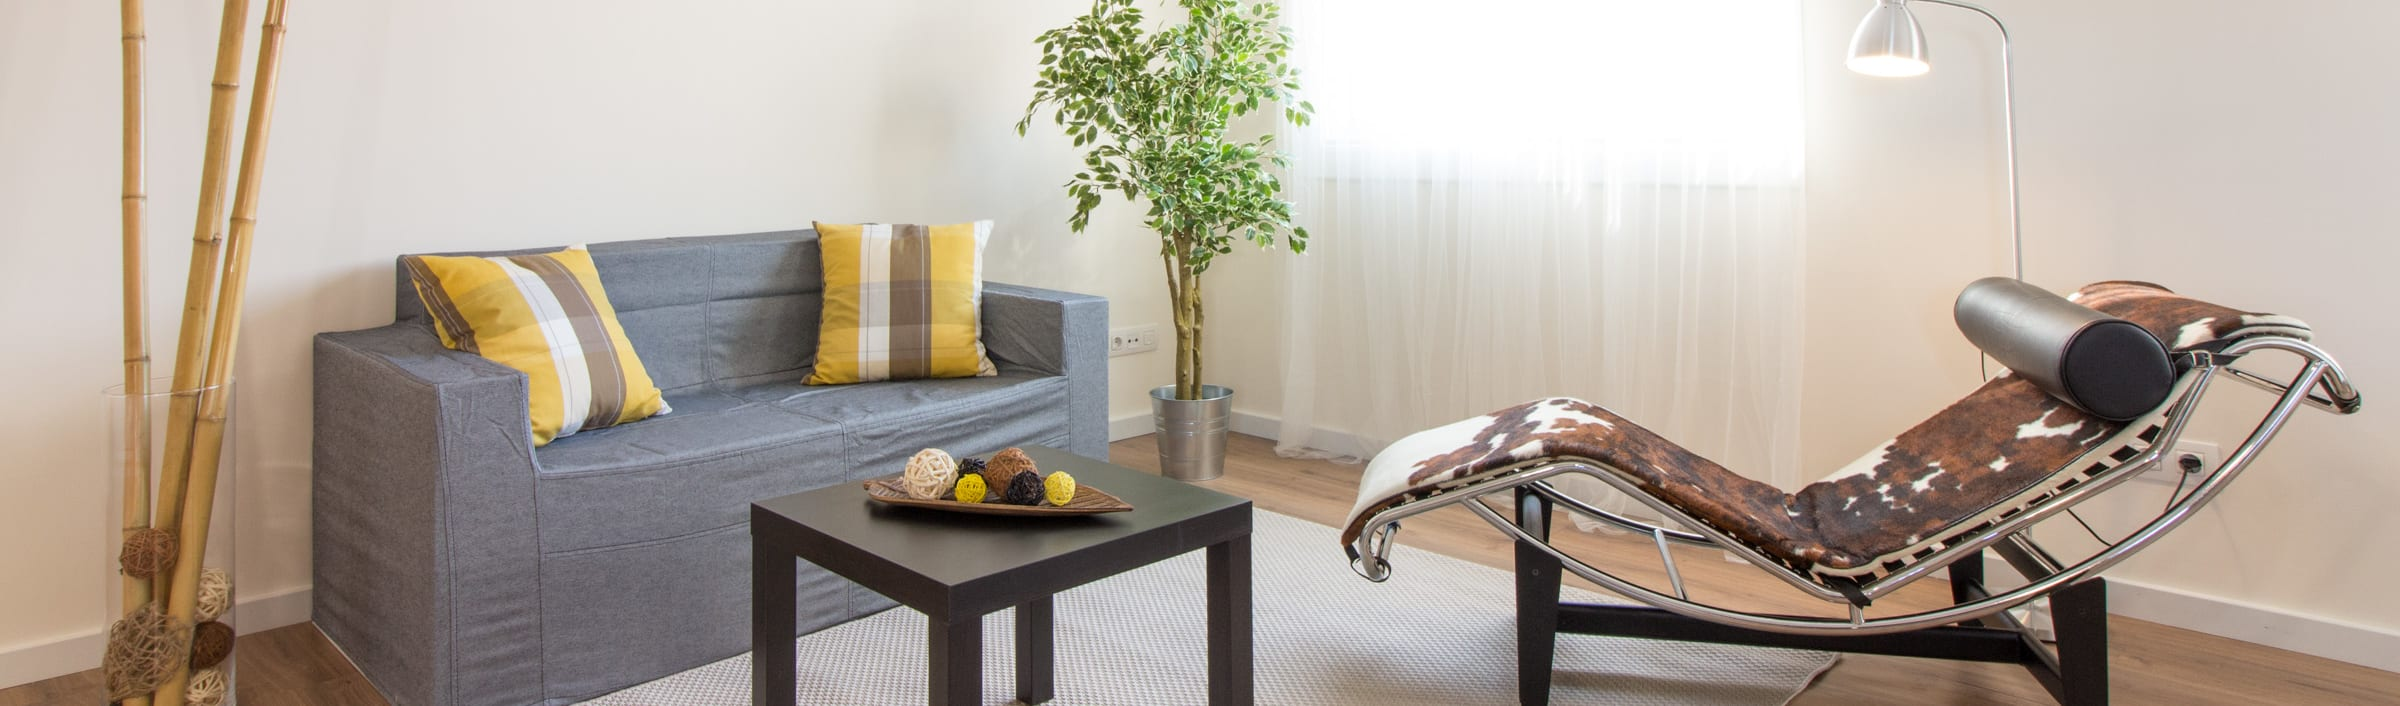 Impuls Home Staging en Barcelona